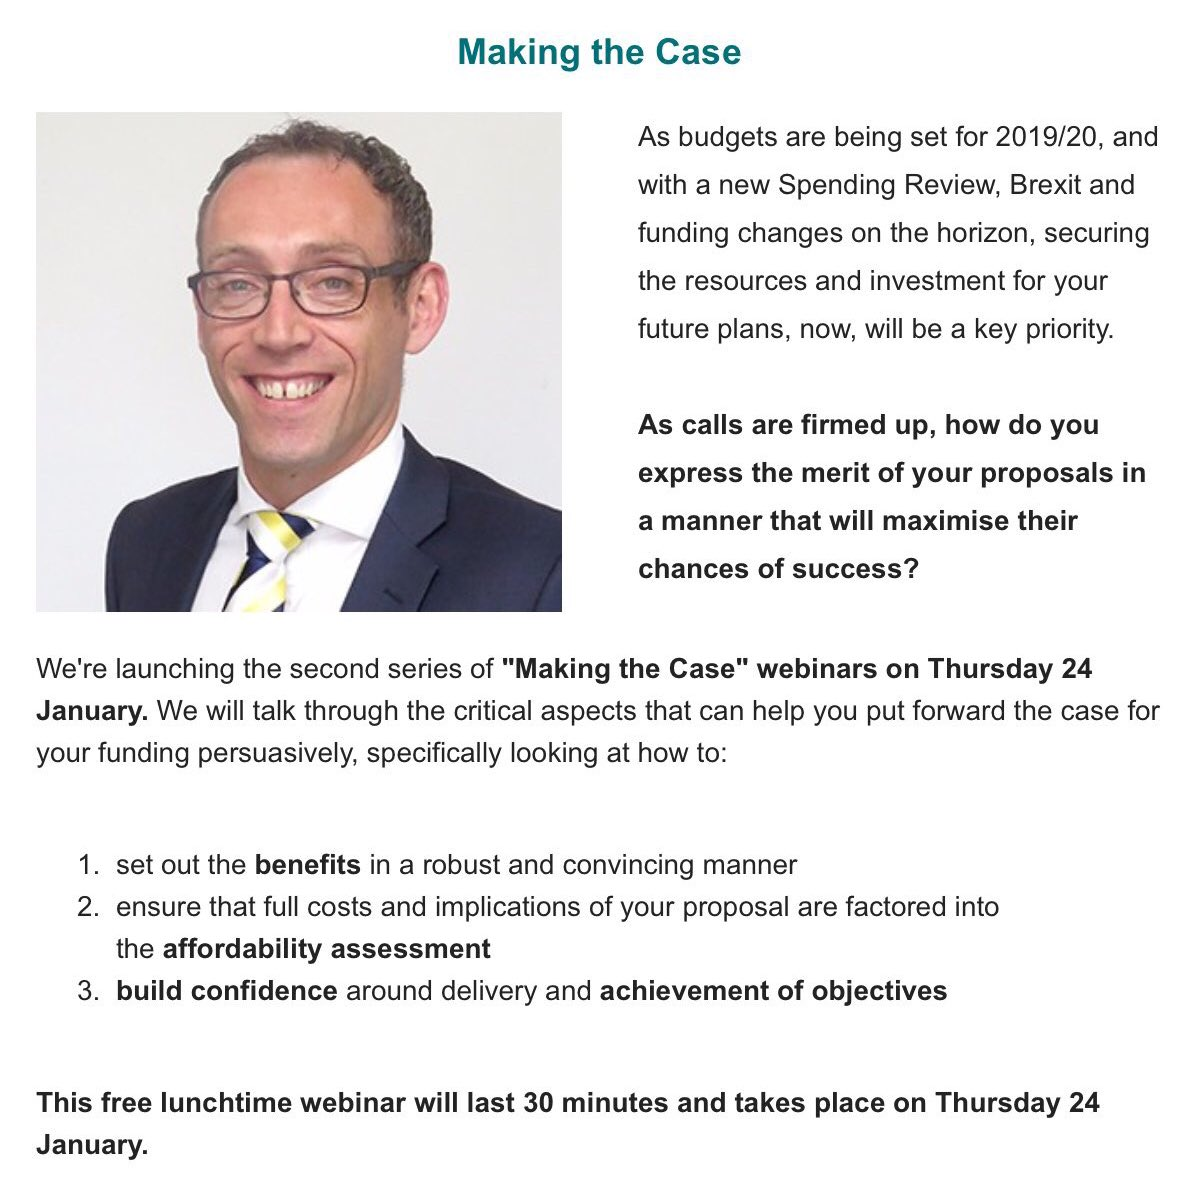 Making the Case 💼 - as calls for funding are firmed up, how do you express your proposals in a manner which which maximise their chances of success?   We're running a free webinar on Thursday 24 January, 1 - 1.30pm. Email Josie.brewer@local.gov.uk to secure your place!